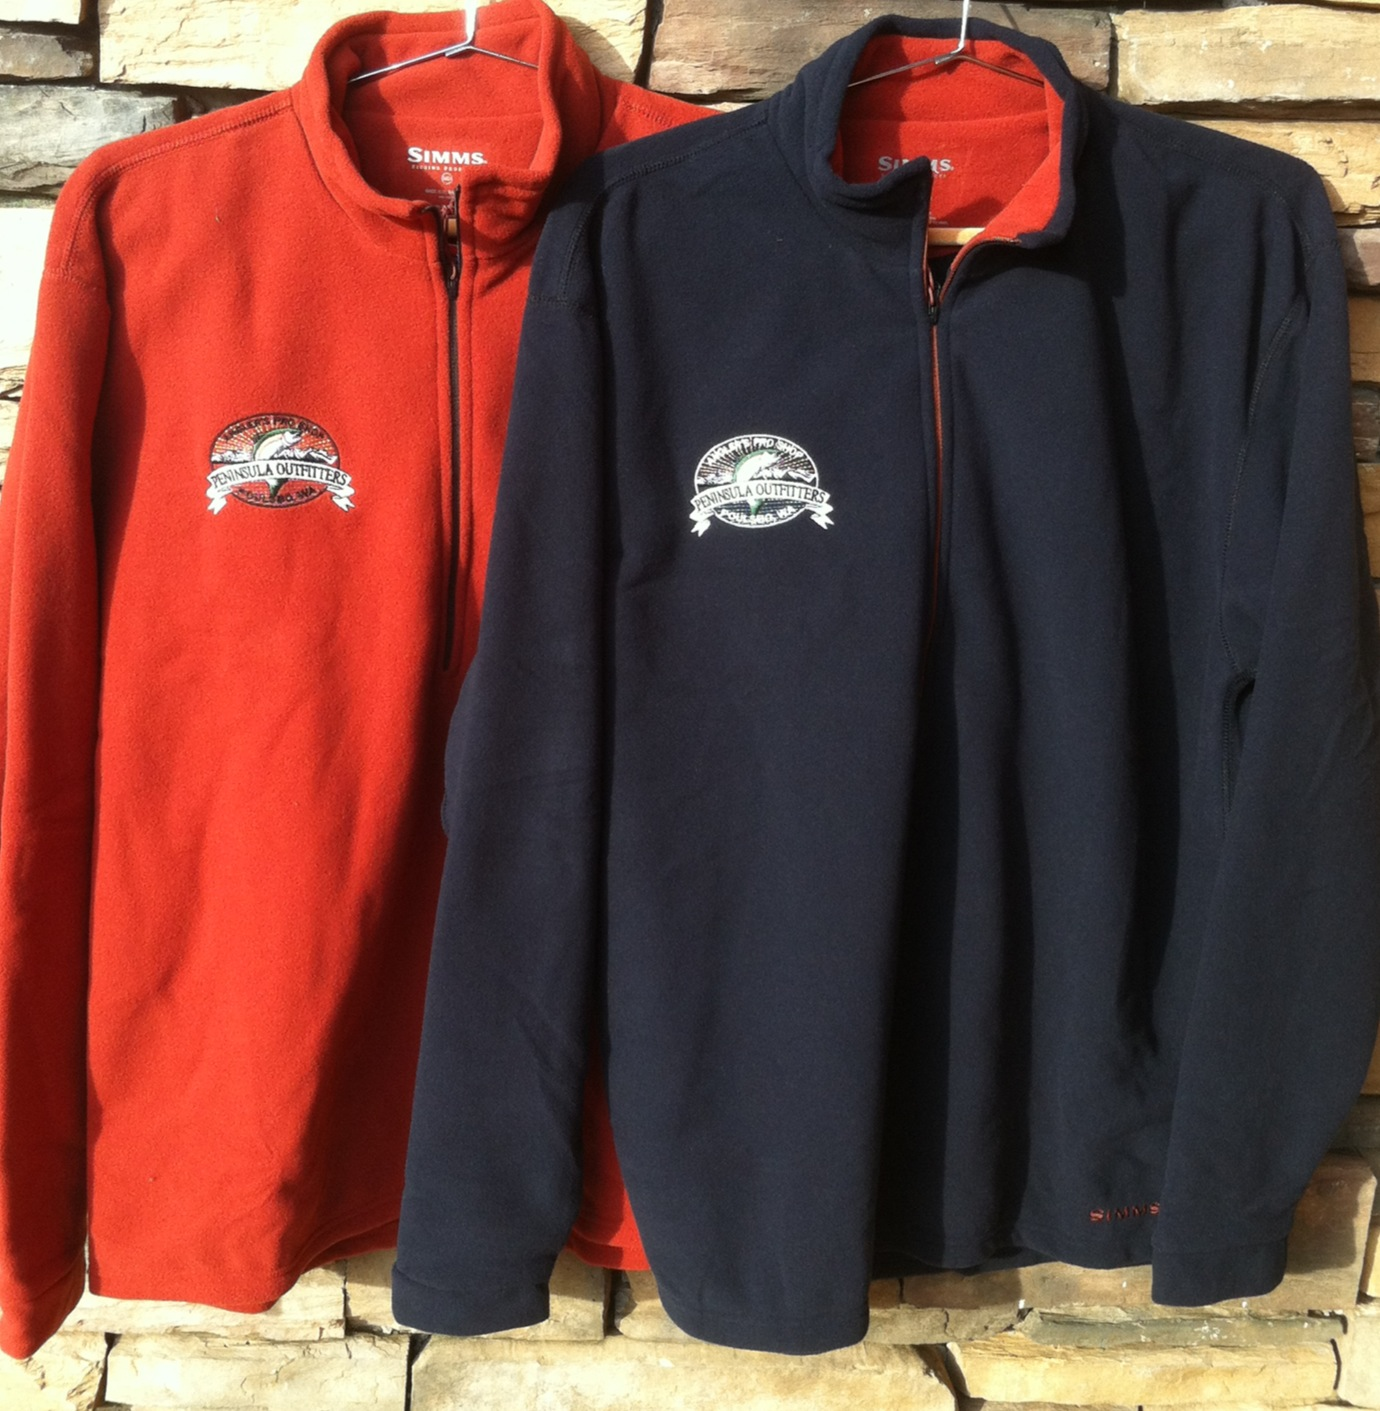 Peninsula Outfitters Shop Online Peninsula Outfitters Gear